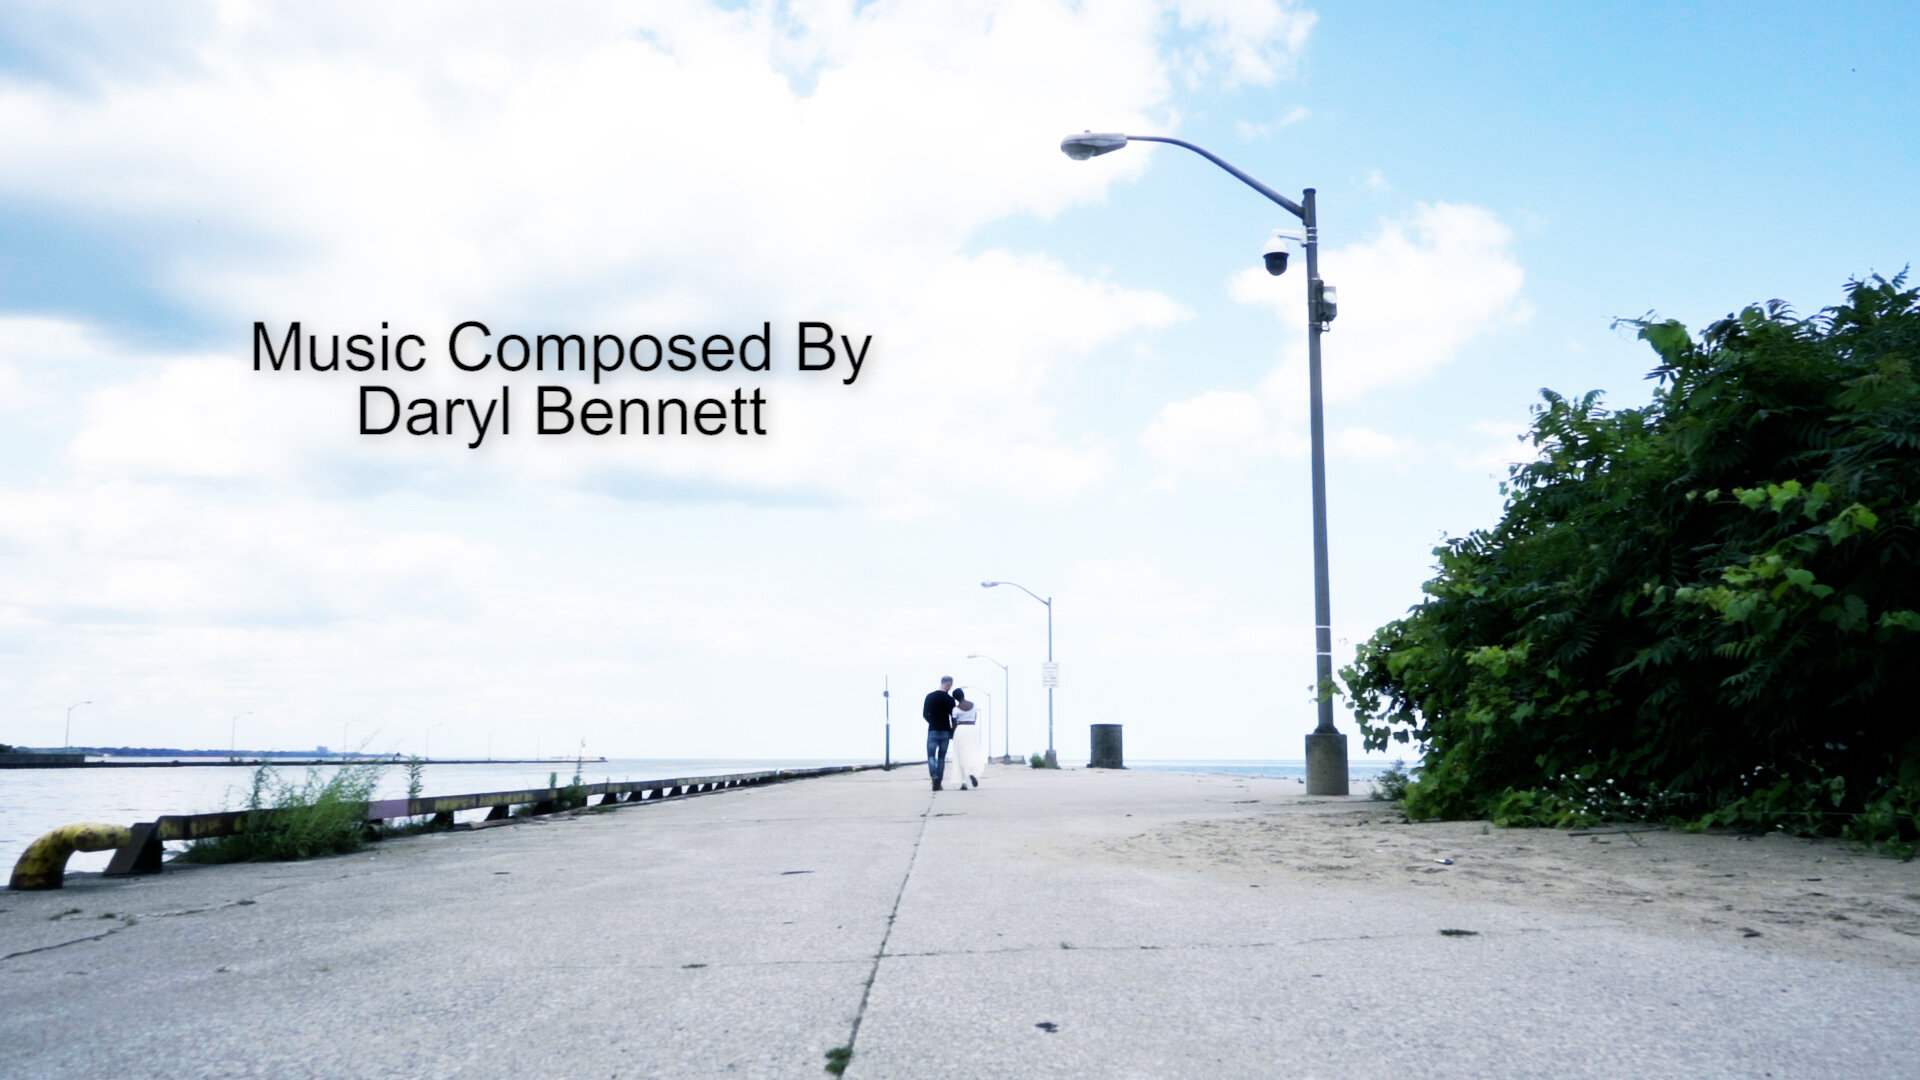 music composed by0.jpg